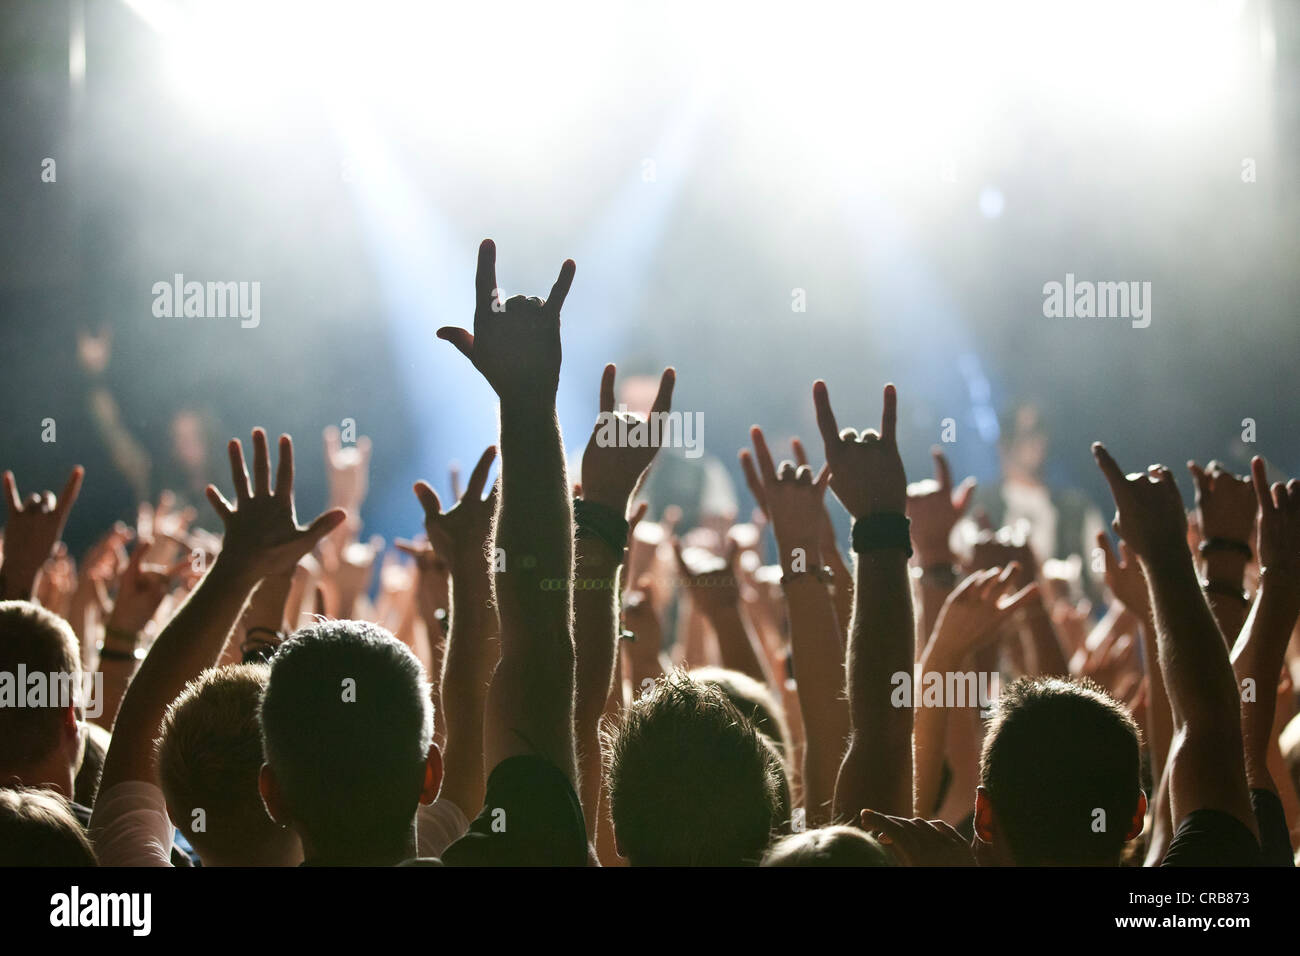 Rocker greeting from fans at rock concert - Stock Image